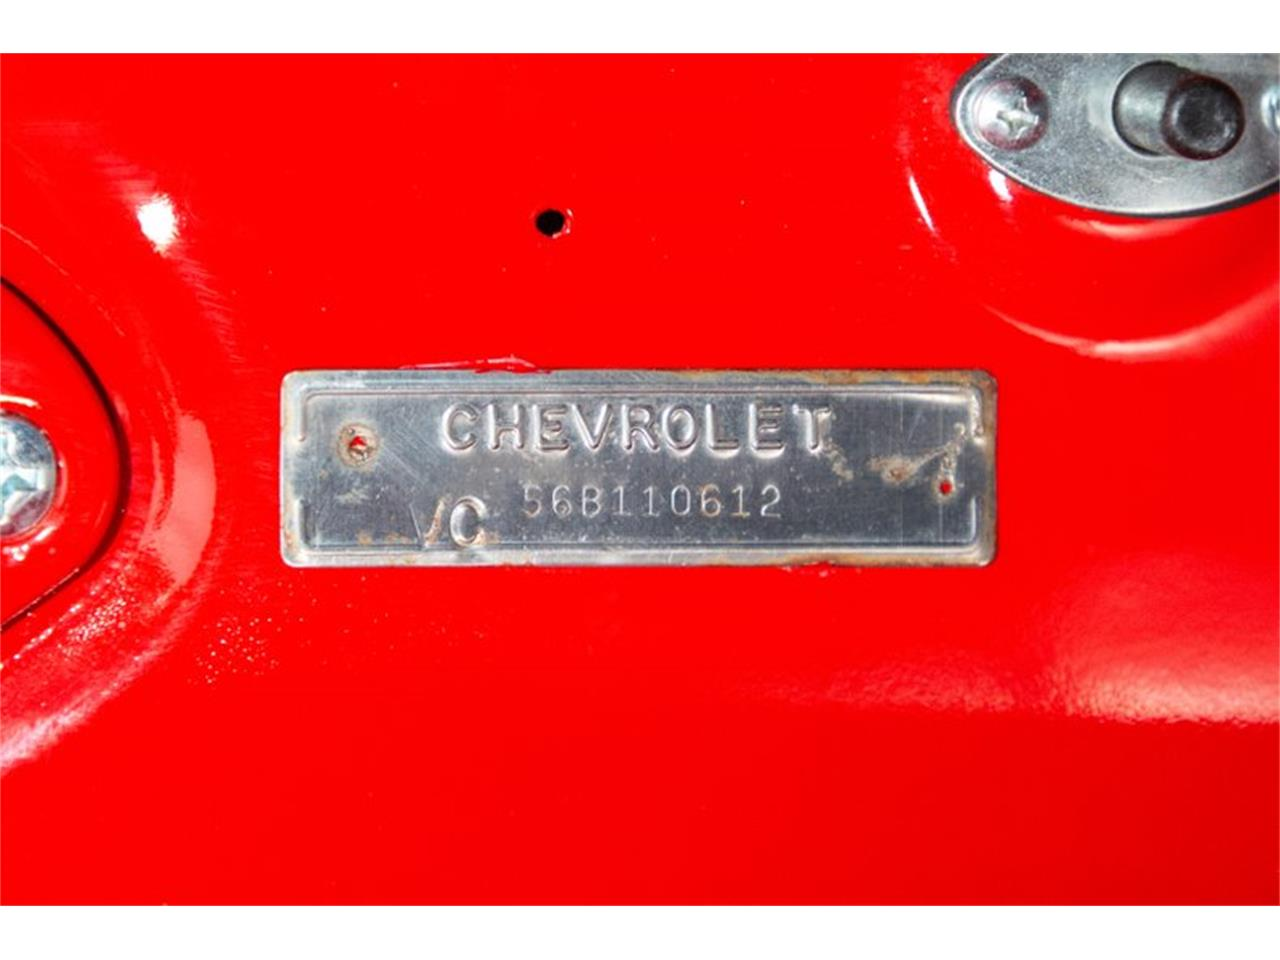 1956 Chevrolet Bel Air for sale in Charlotte, NC – photo 75